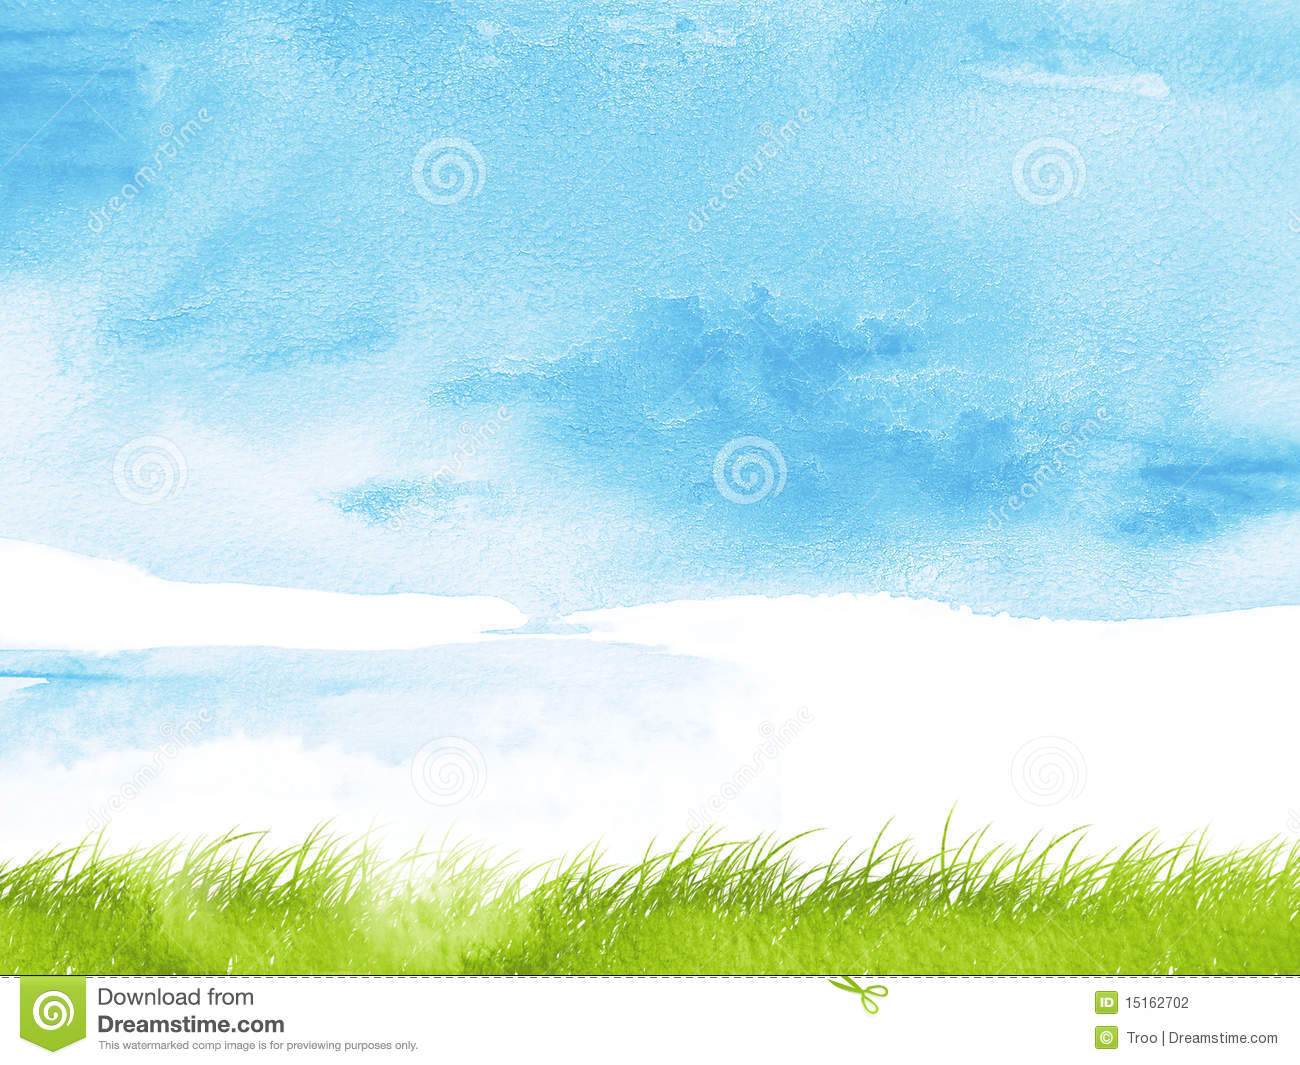 Nature Images 2mb: Watercolor Grass Stock Illustration. Illustration Of Pure